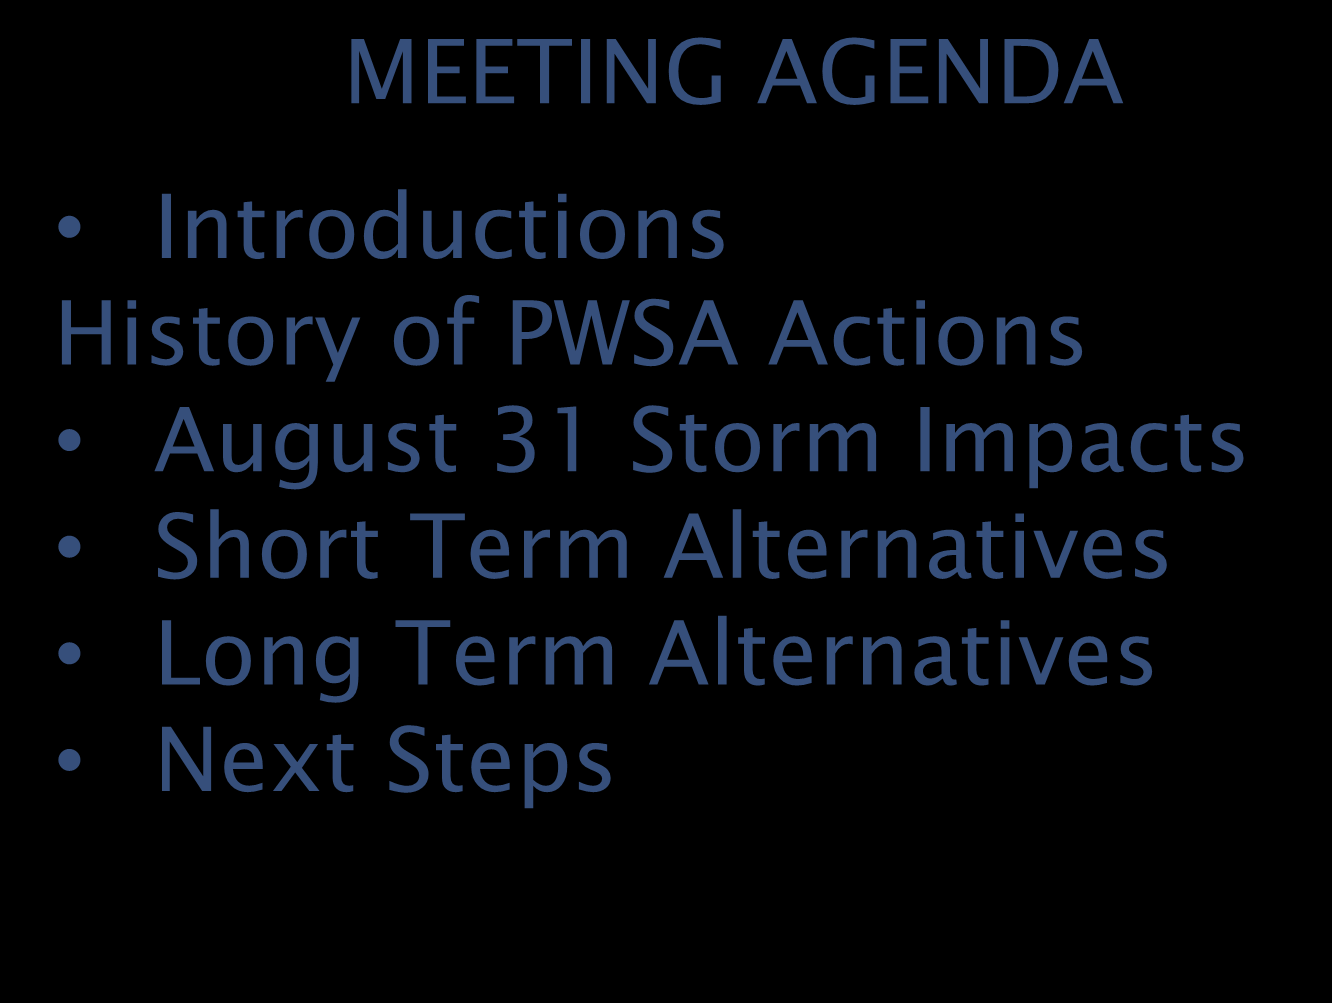 MARYLAND AVENUE BACKUPS COMMUNITY OUTREACH MEETING AGENDA Introductions History of PWSA Actions August 31 Storm Impacts Short Term Alternatives